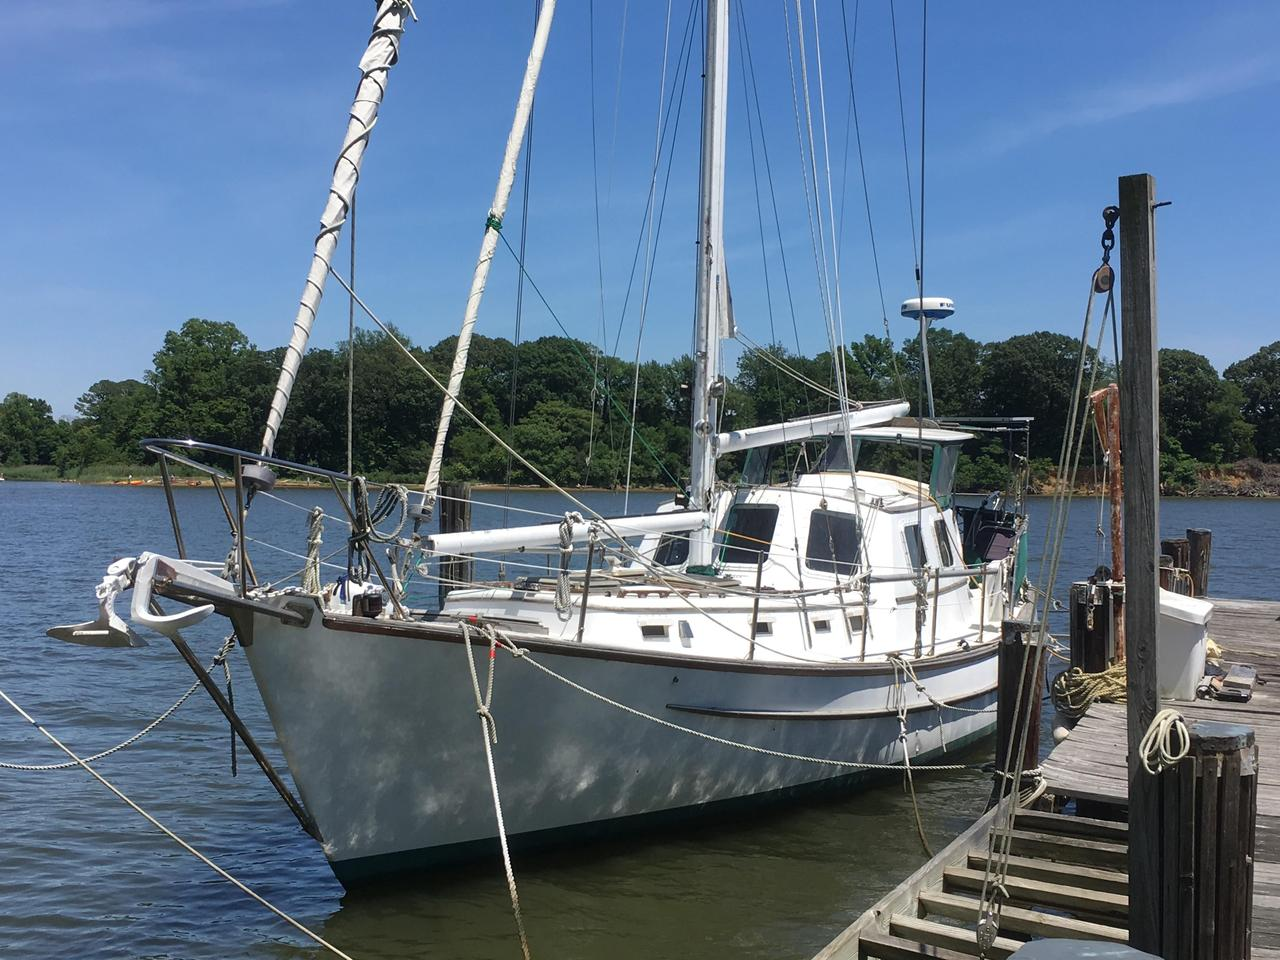 1981 Used Seaton Pilothouse Cutter Cruiser Sailboat For Sale